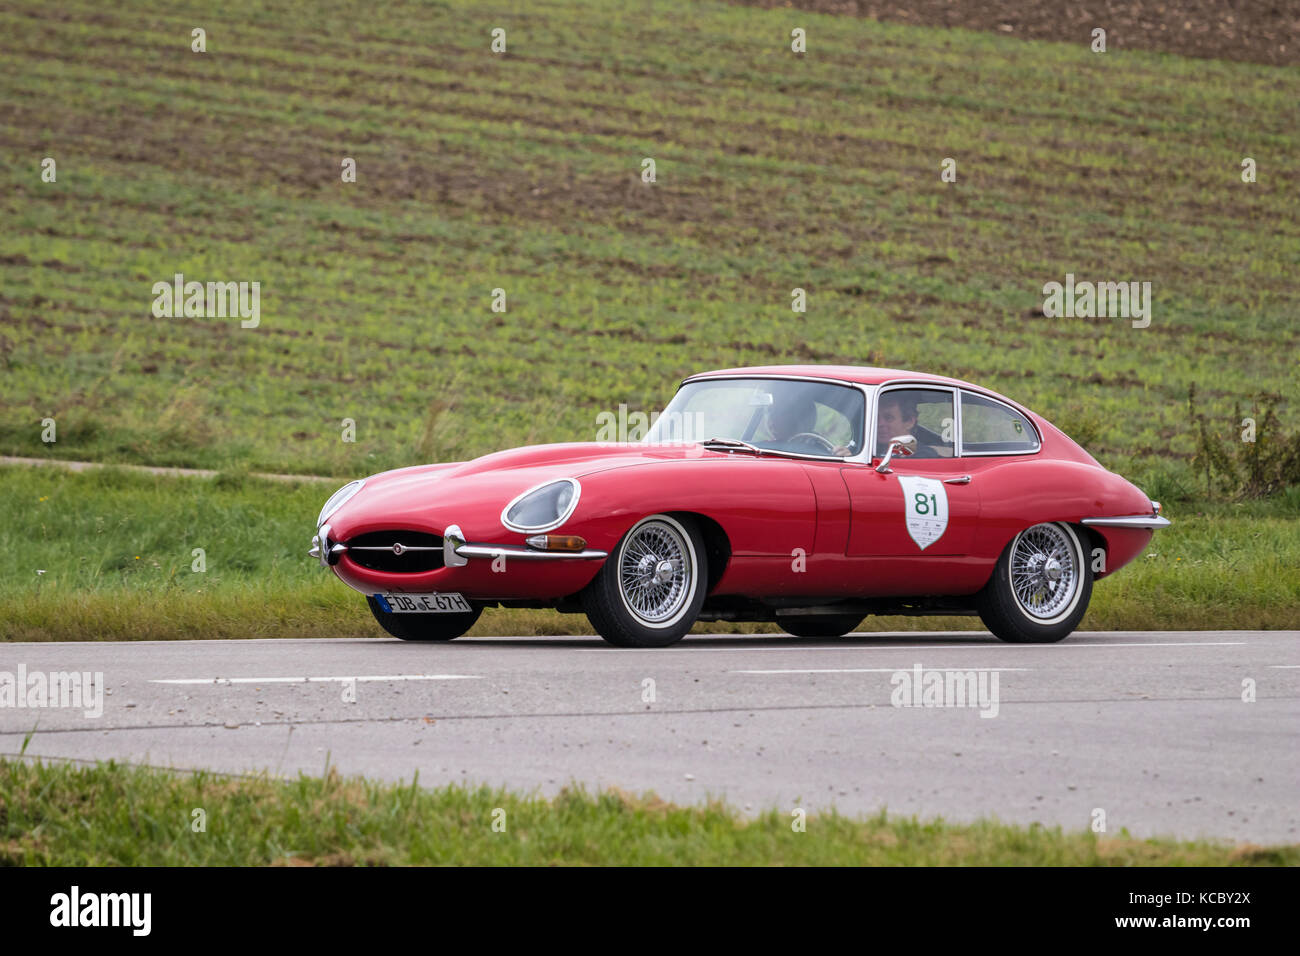 Augsburg, Germany   October 1, 2017: Jaguar E Type Oldtimer Car At The  Fuggerstadt Classic 2017 Oldtimer Rallye On October 1, 2017 In Augsburg,  German